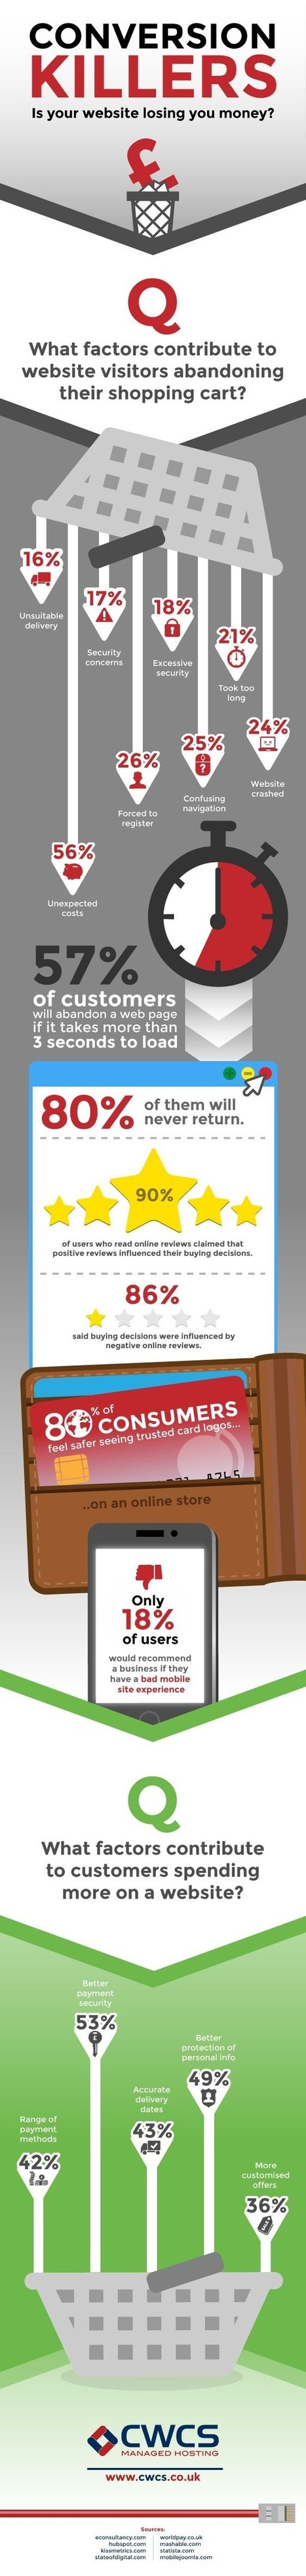 10 Reasons People Abandon Your eCommerce Website Without Buying From You | Ecommerce | Scoop.it